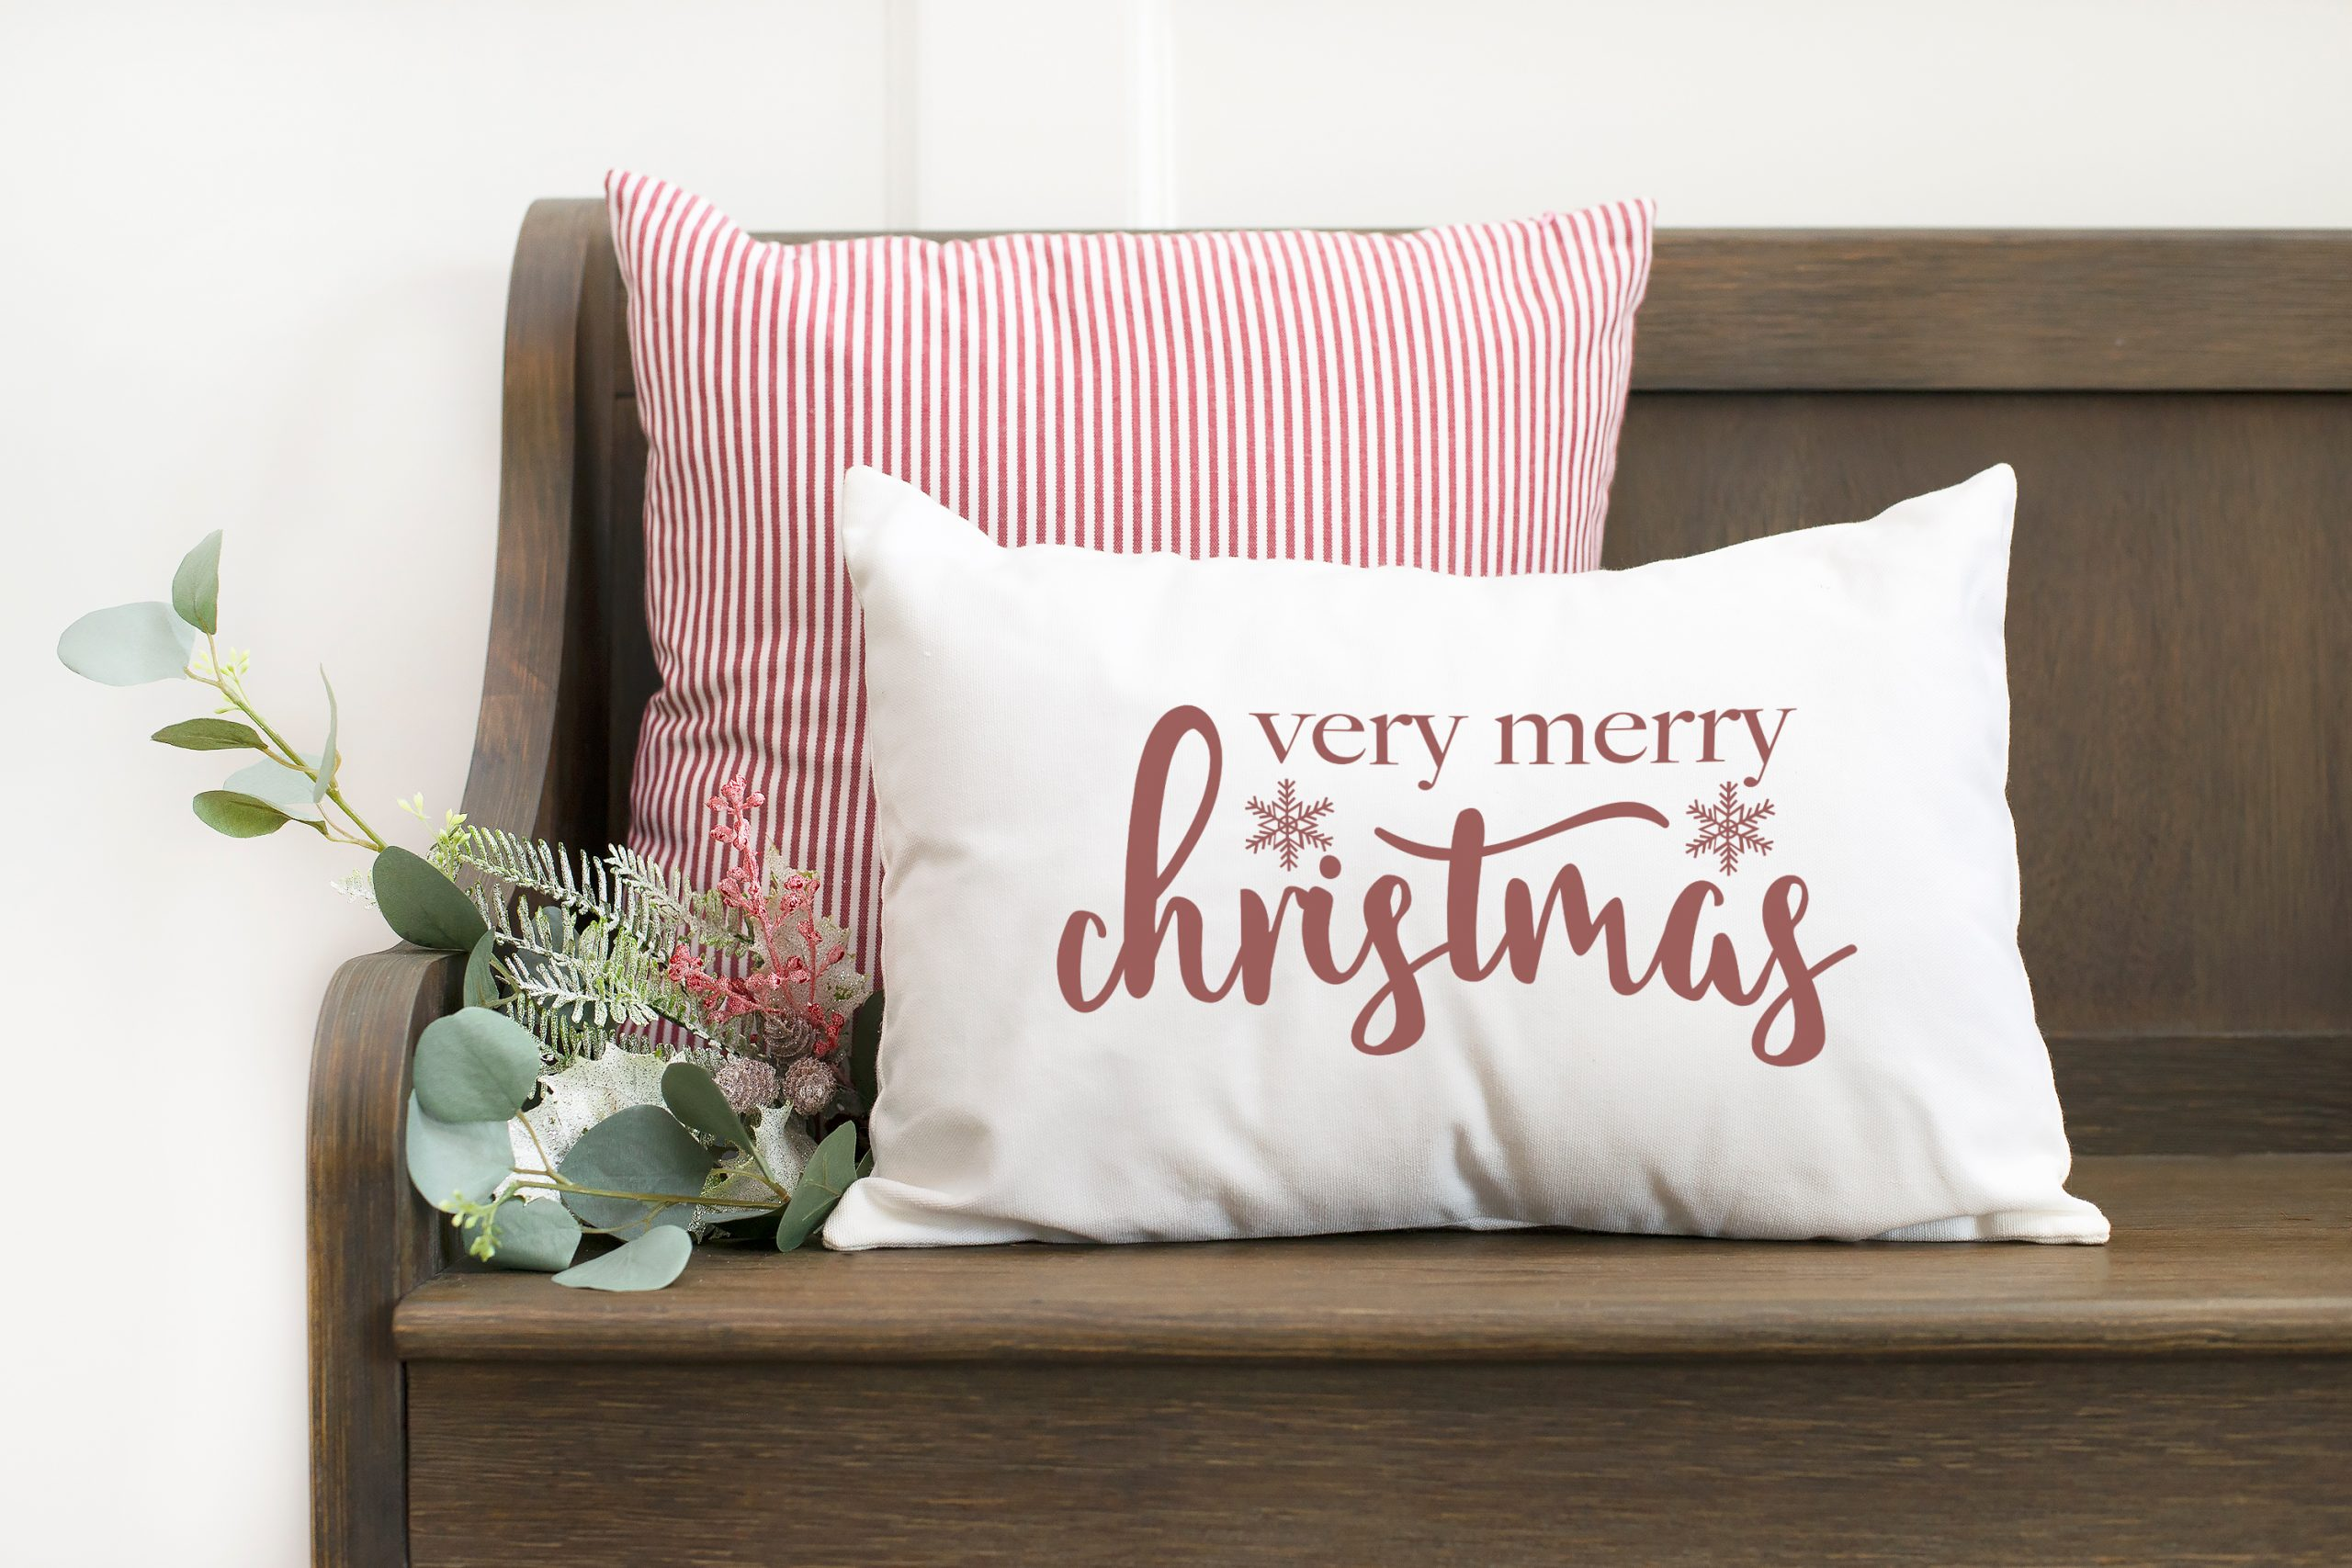 Christmas Bench Pillow with very merry text